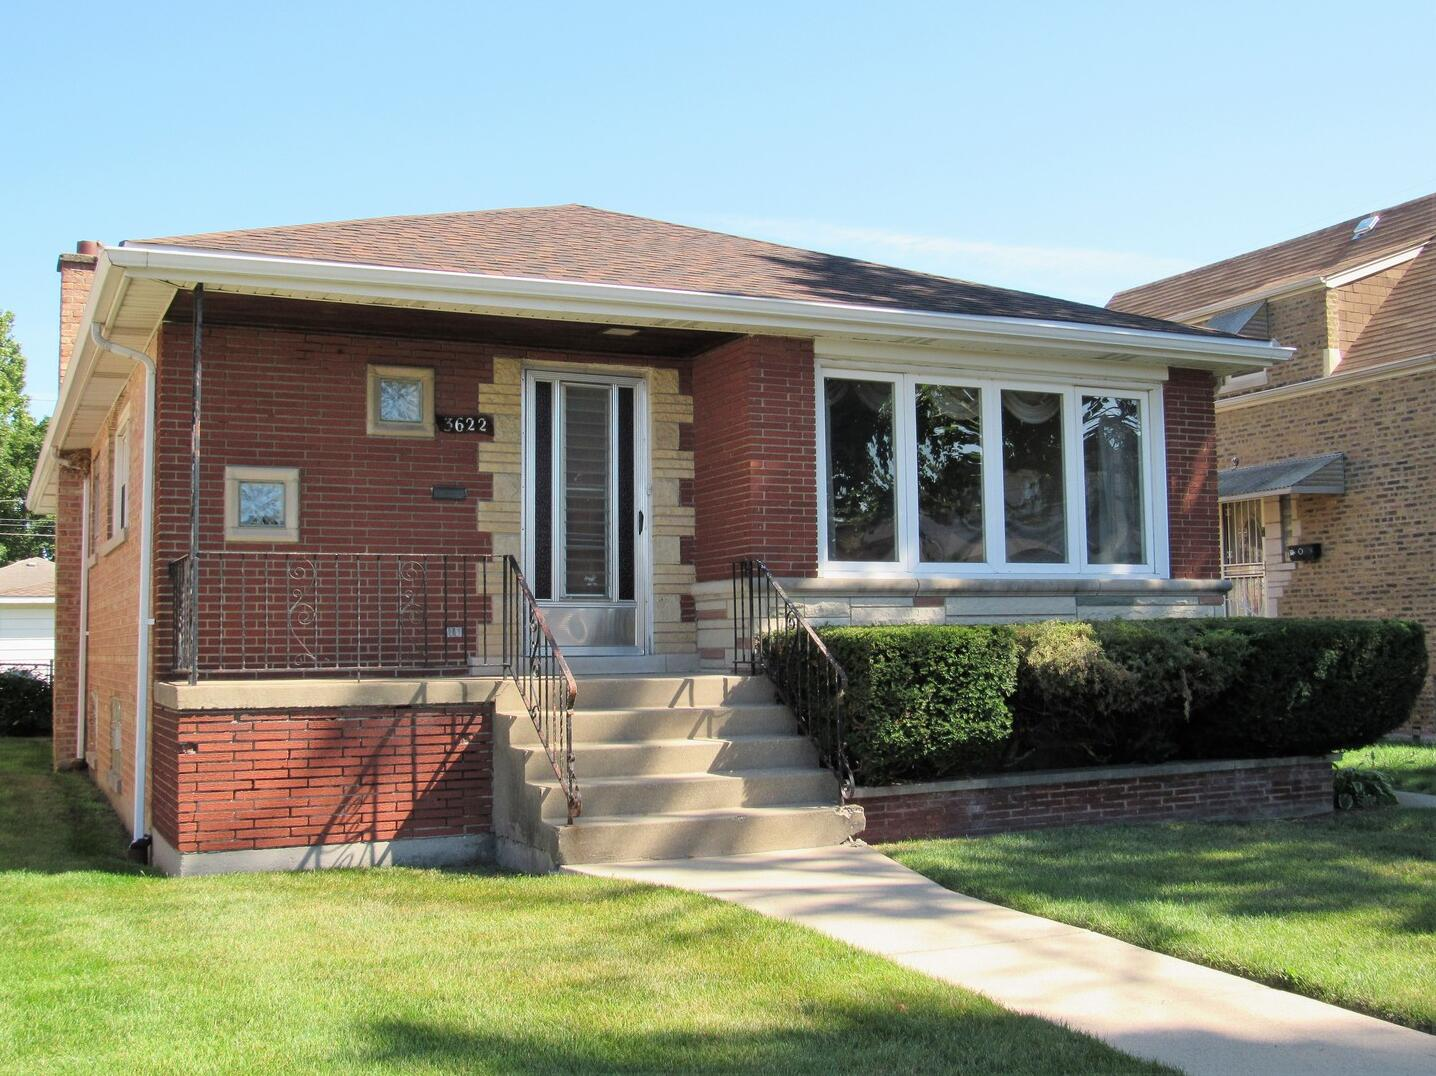 Photo of 3622 82nd Chicago IL 60652